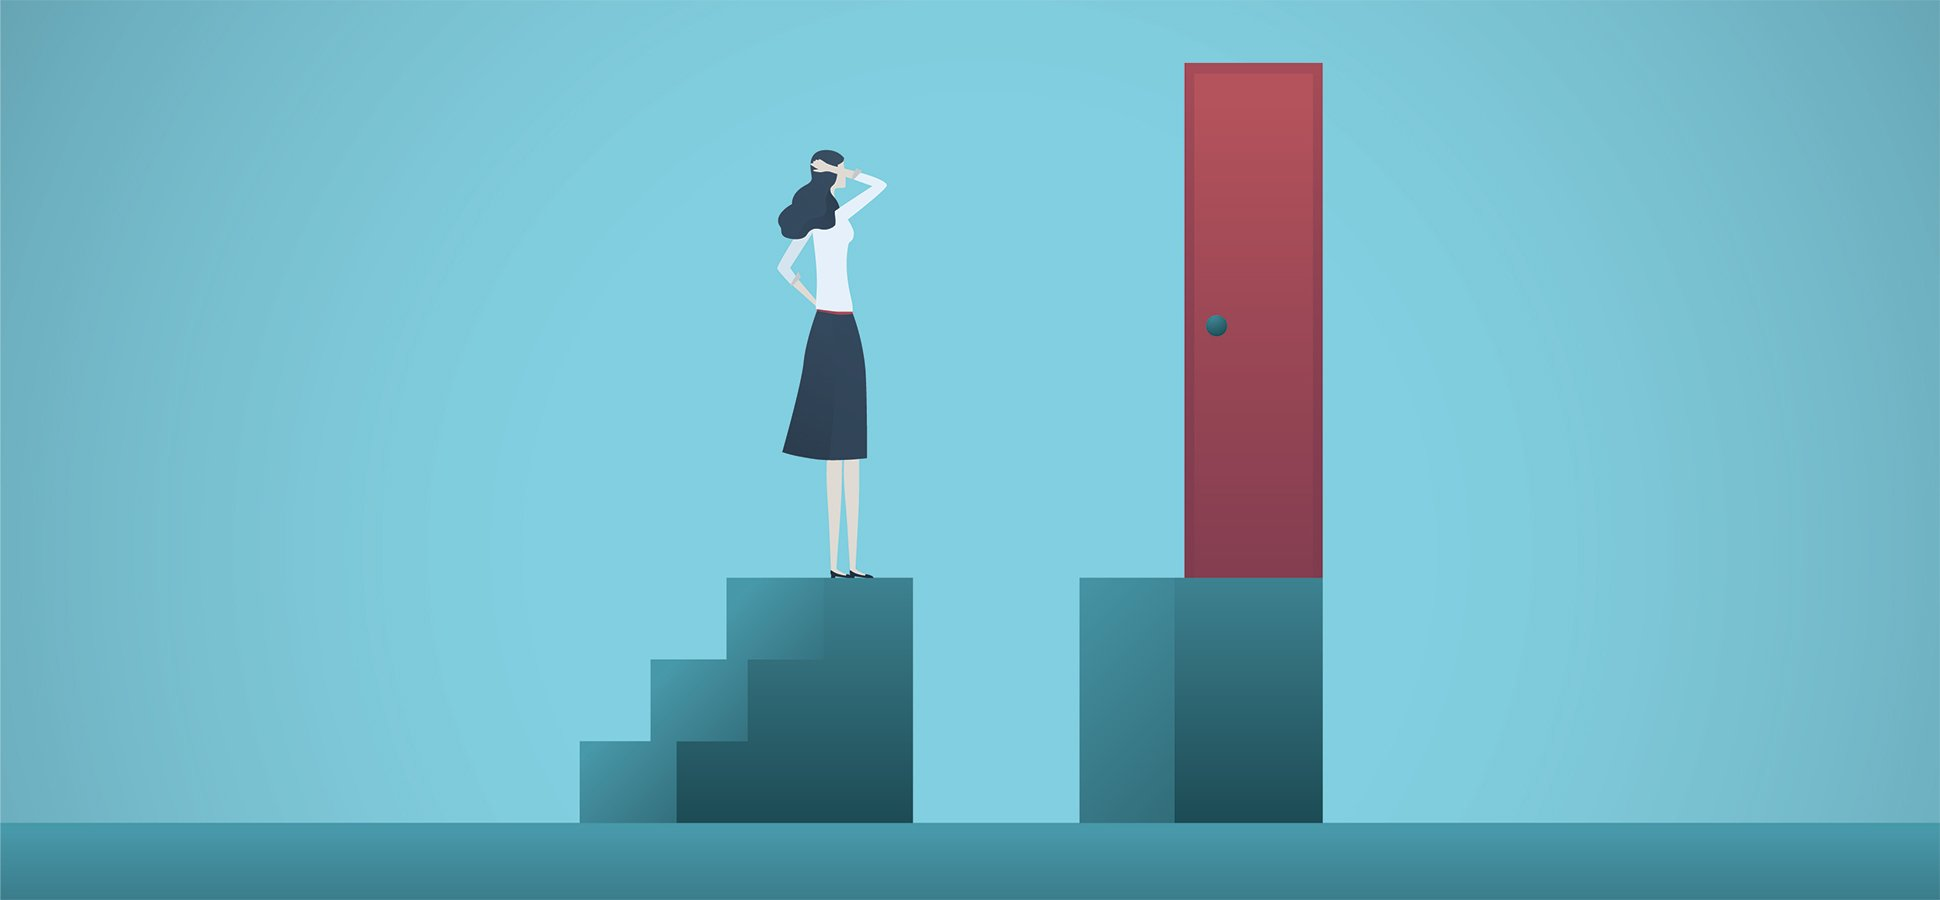 Women: Stop Being So Helpful If You Want to Advance at Work